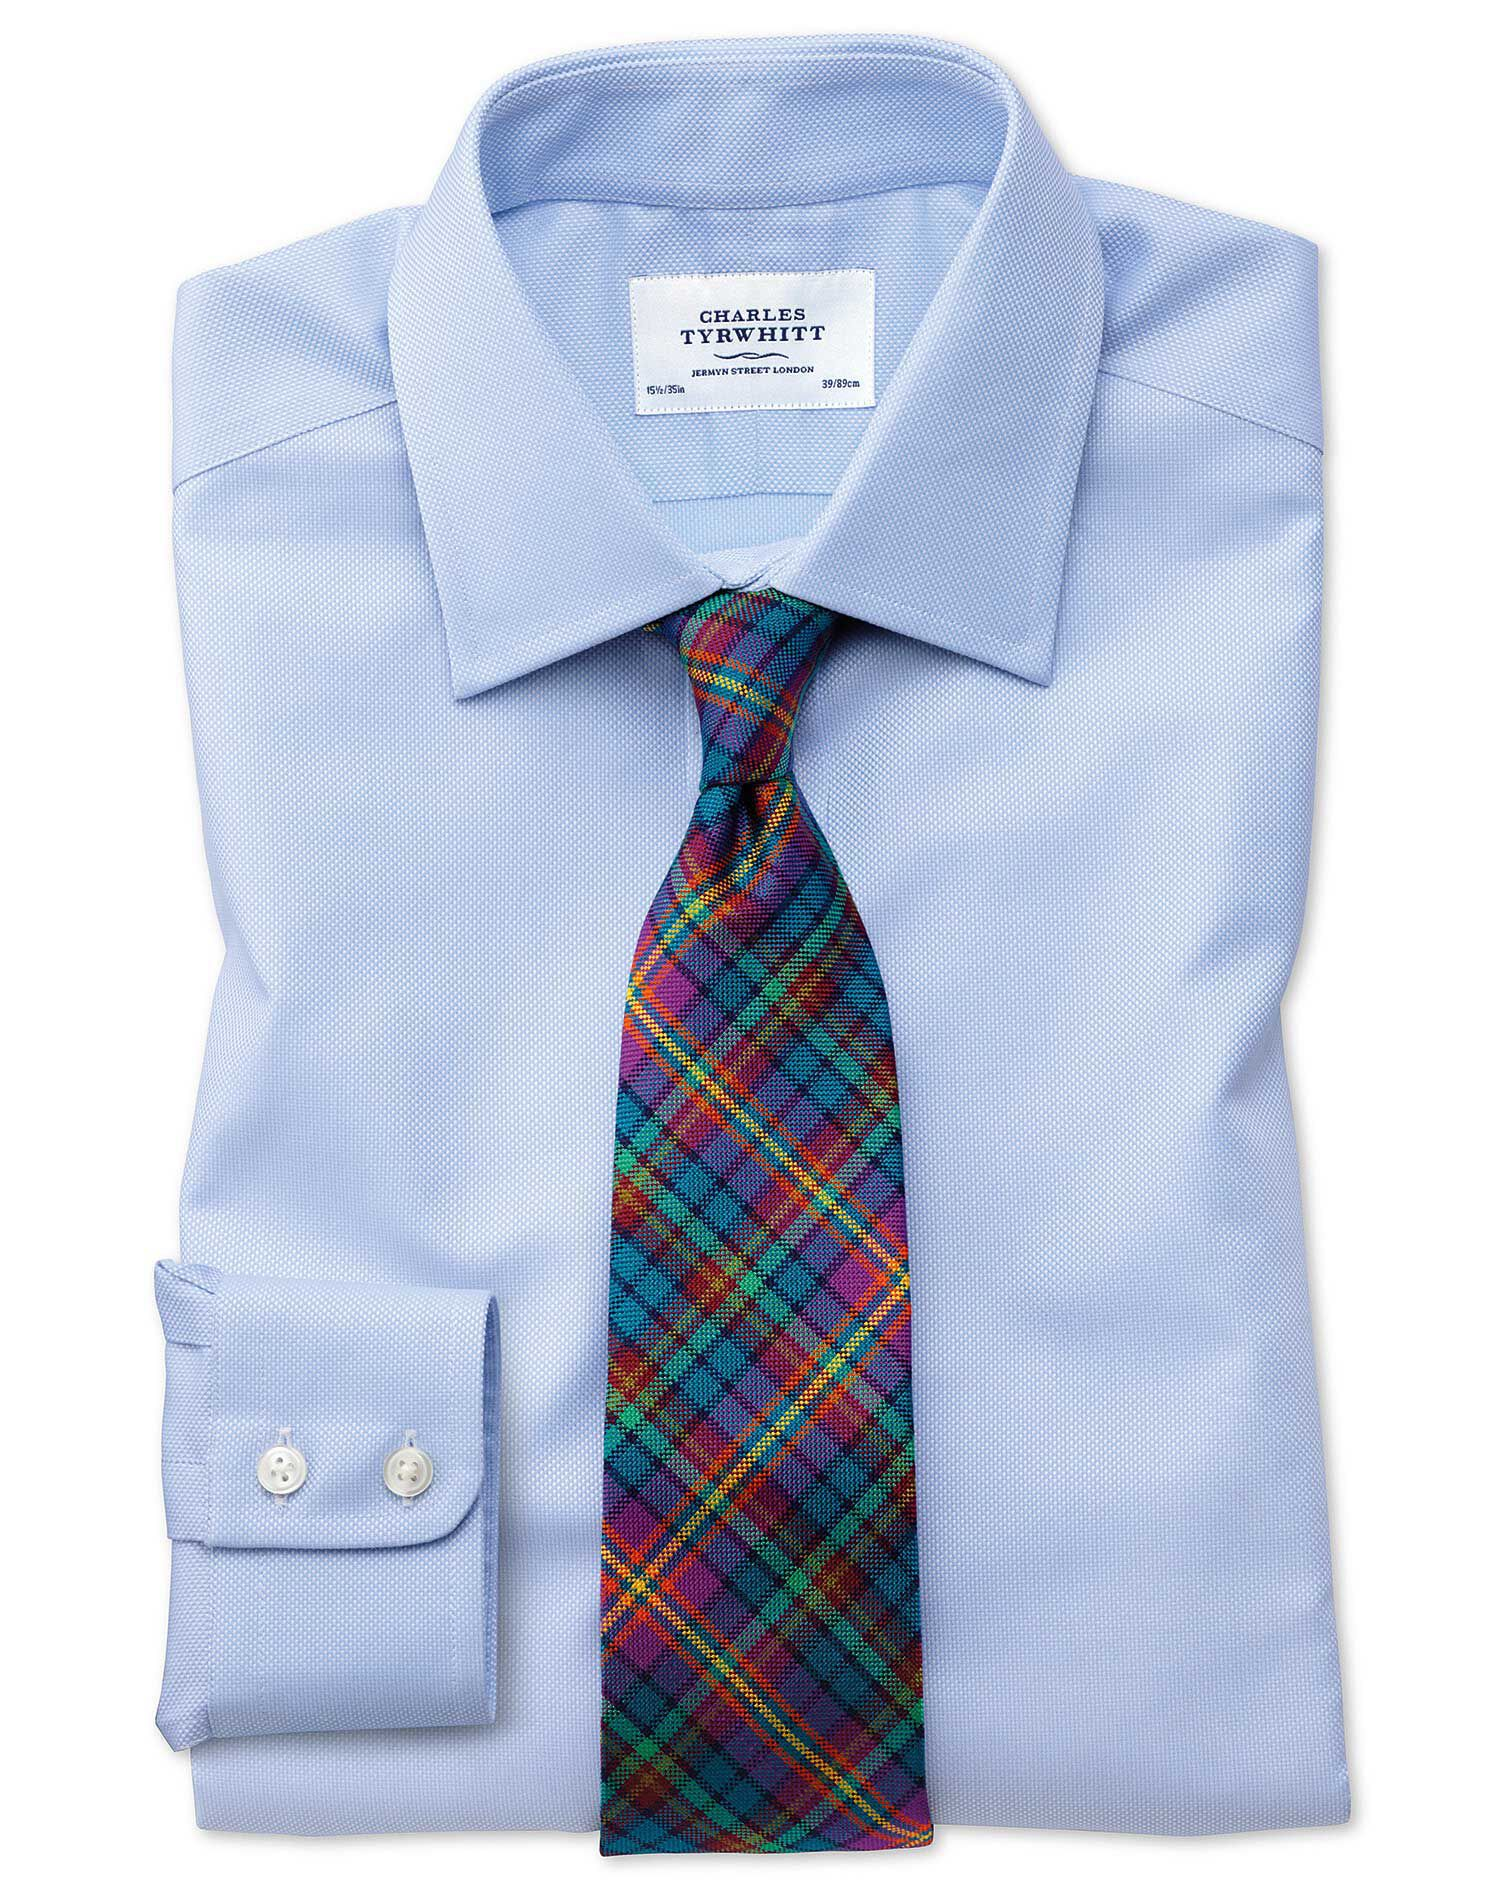 Slim Fit Egyptian Cotton Royal Oxford Sky Blue Formal Shirt Single Cuff Size 15.5/37 by Charles Tyrw